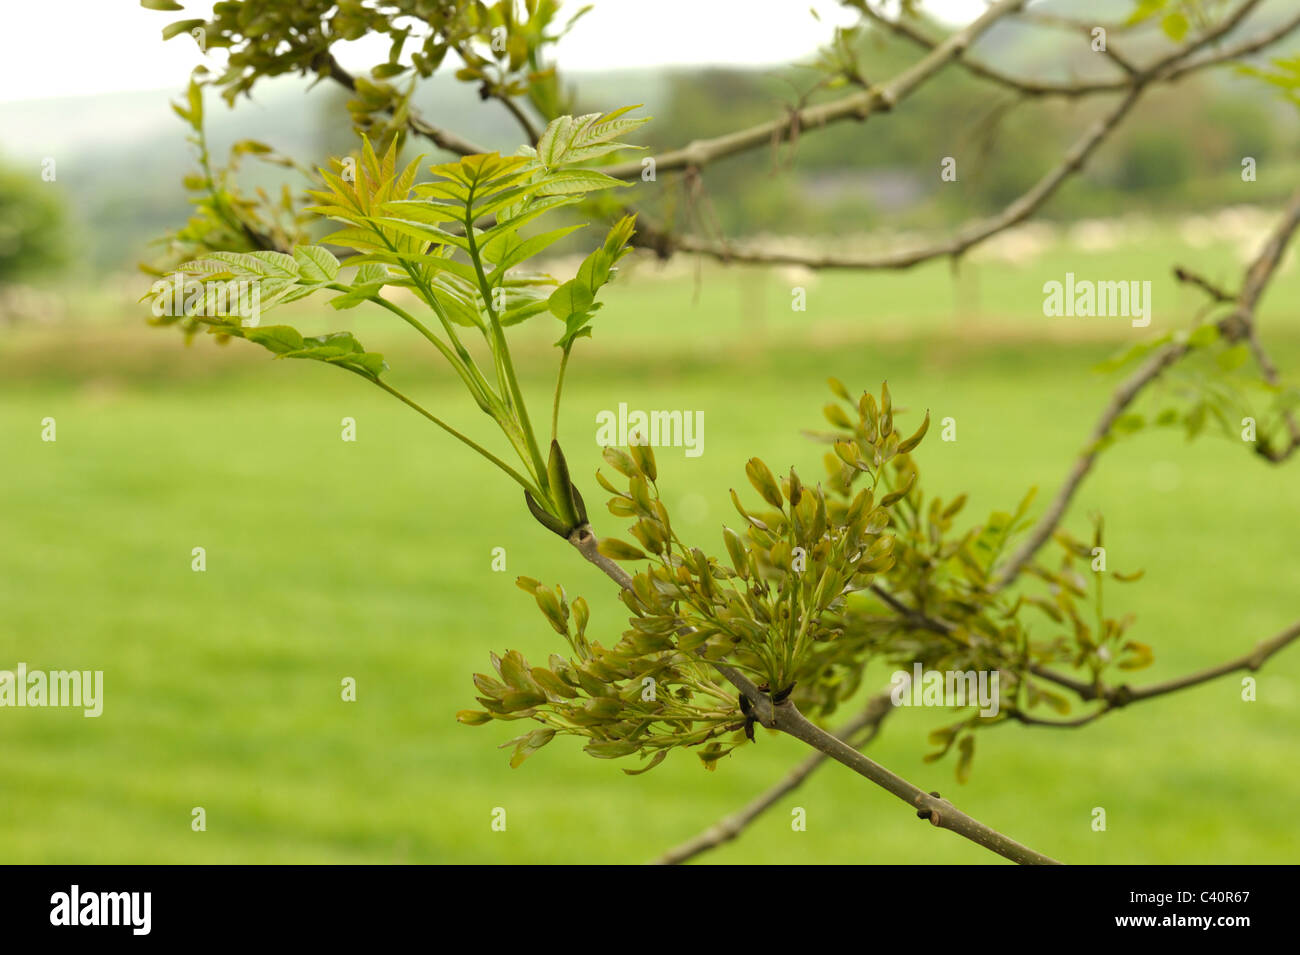 Young Ash twig with keys, fraxinus excelsior - Stock Image